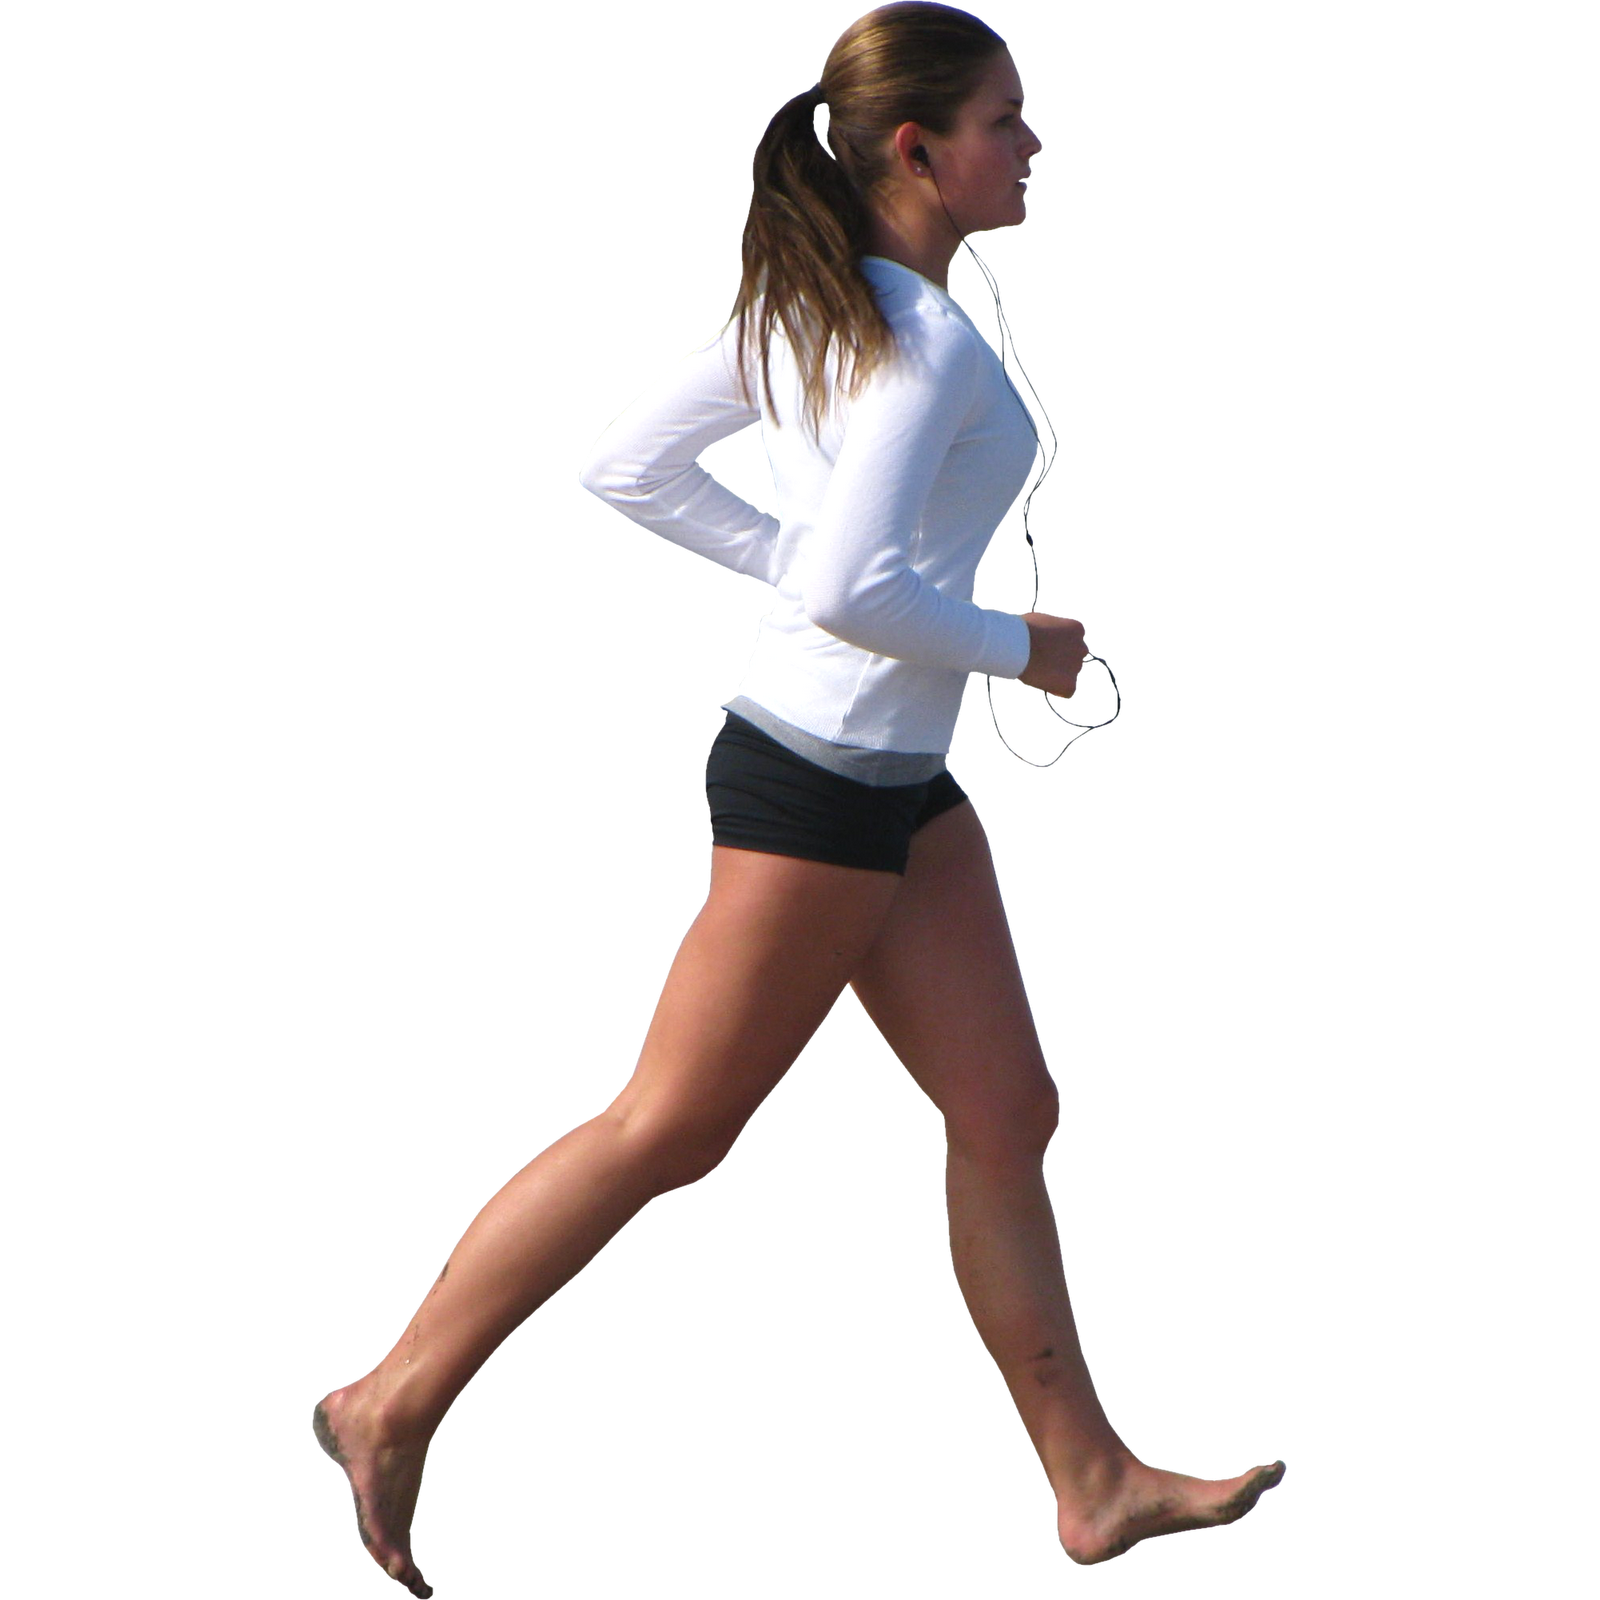 Woman Jogging Png Transparent Woman Jogging Png Images